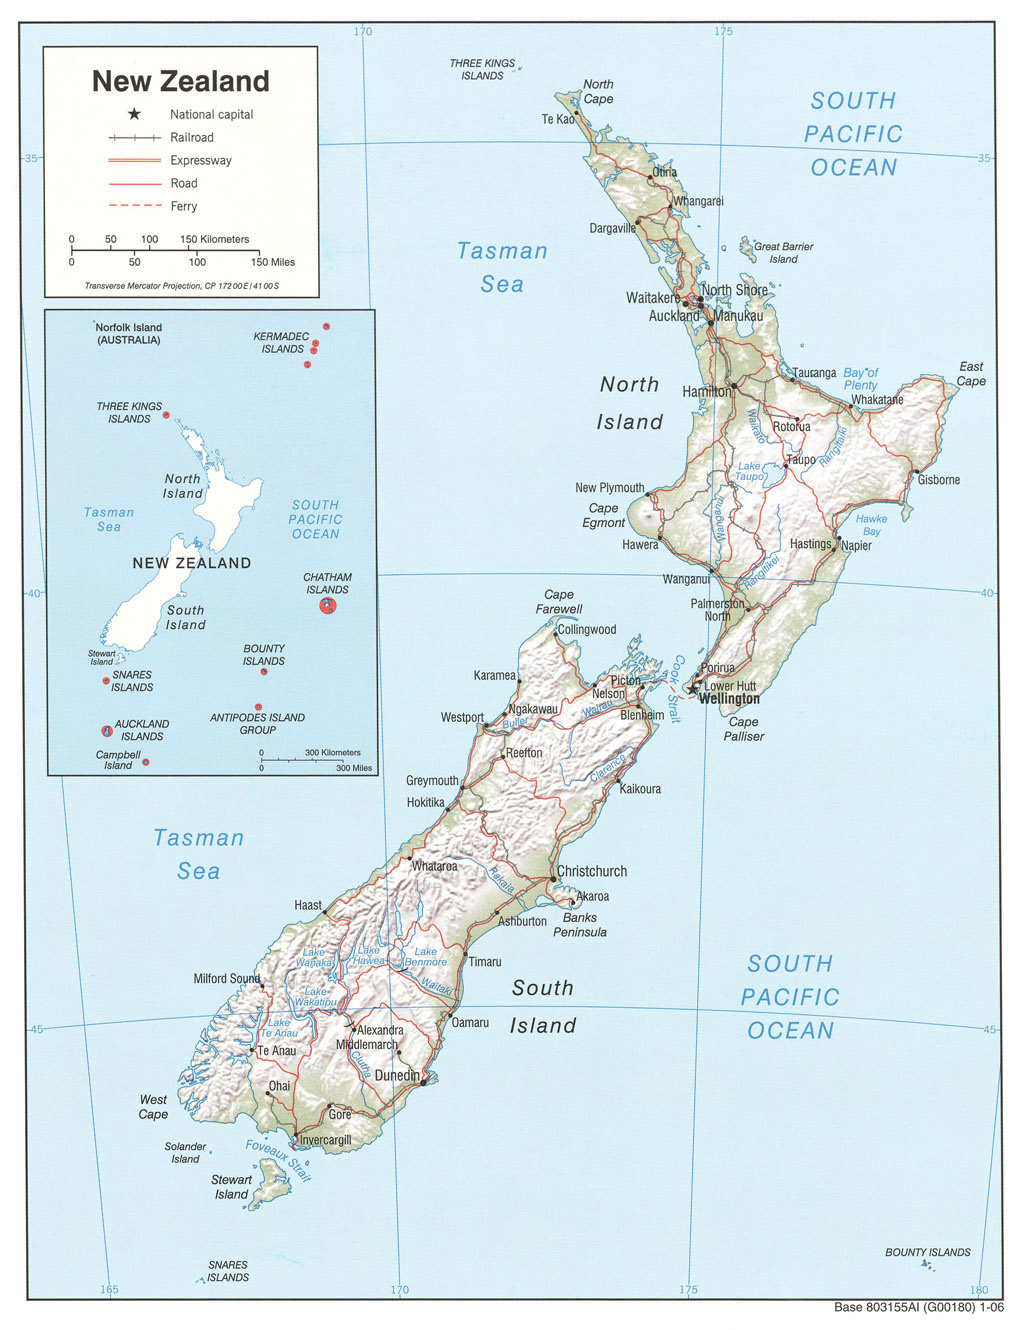 New Zealand Road Map.Large Detailed Political And Relief Map Of New Zealand With Roads